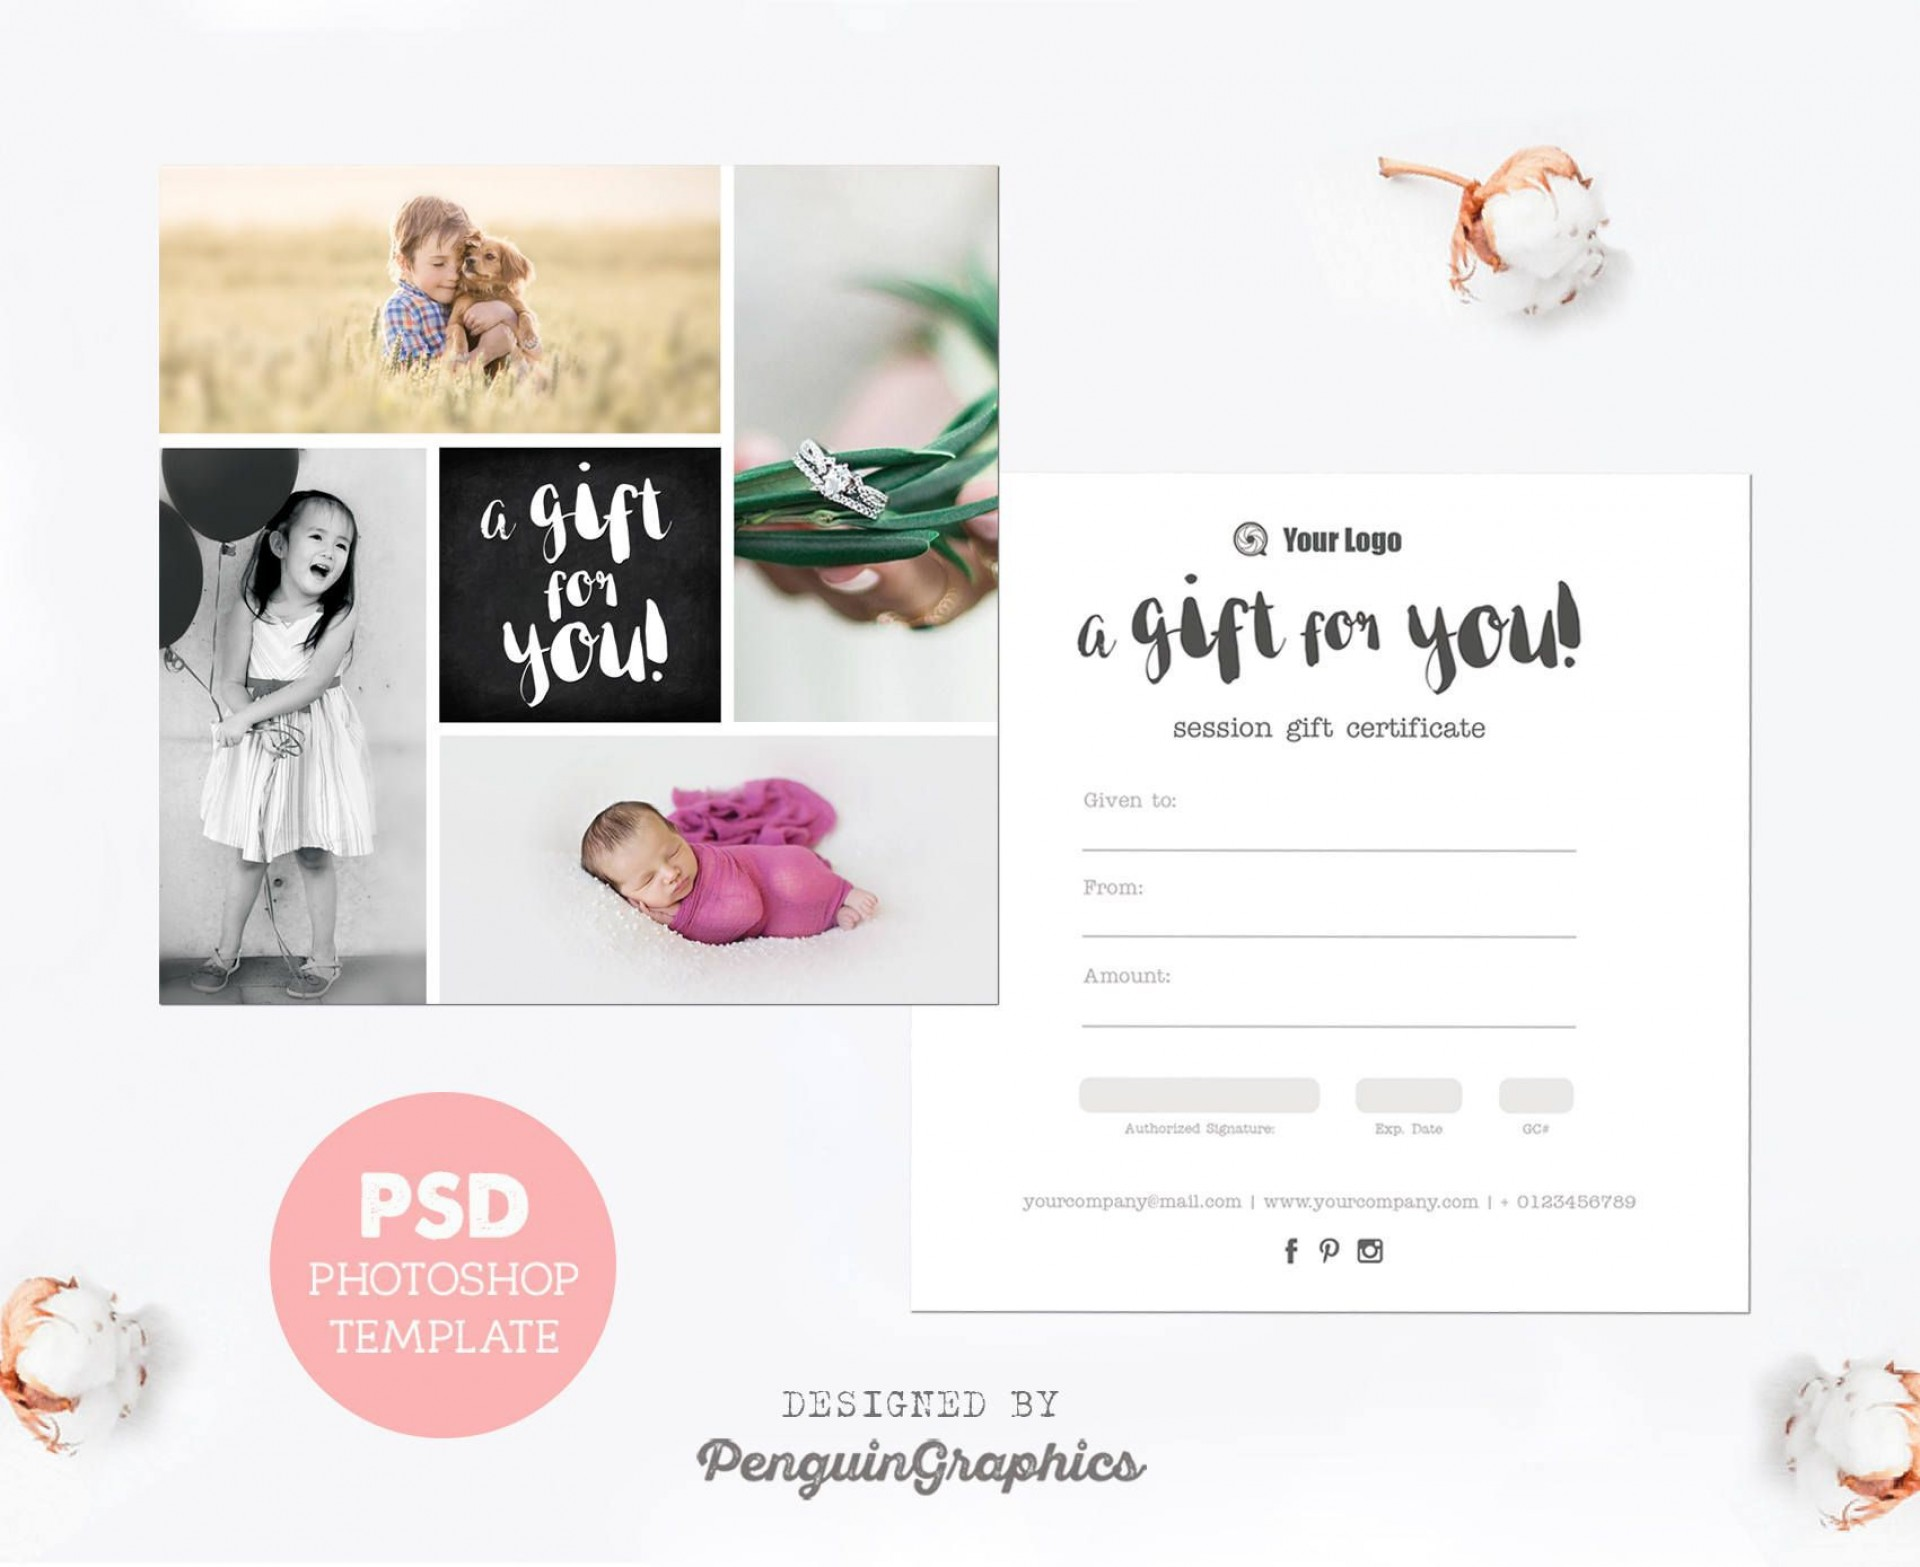 006 Exceptional Photography Session Gift Certificate Template Design  Photo Free Photoshoot1920